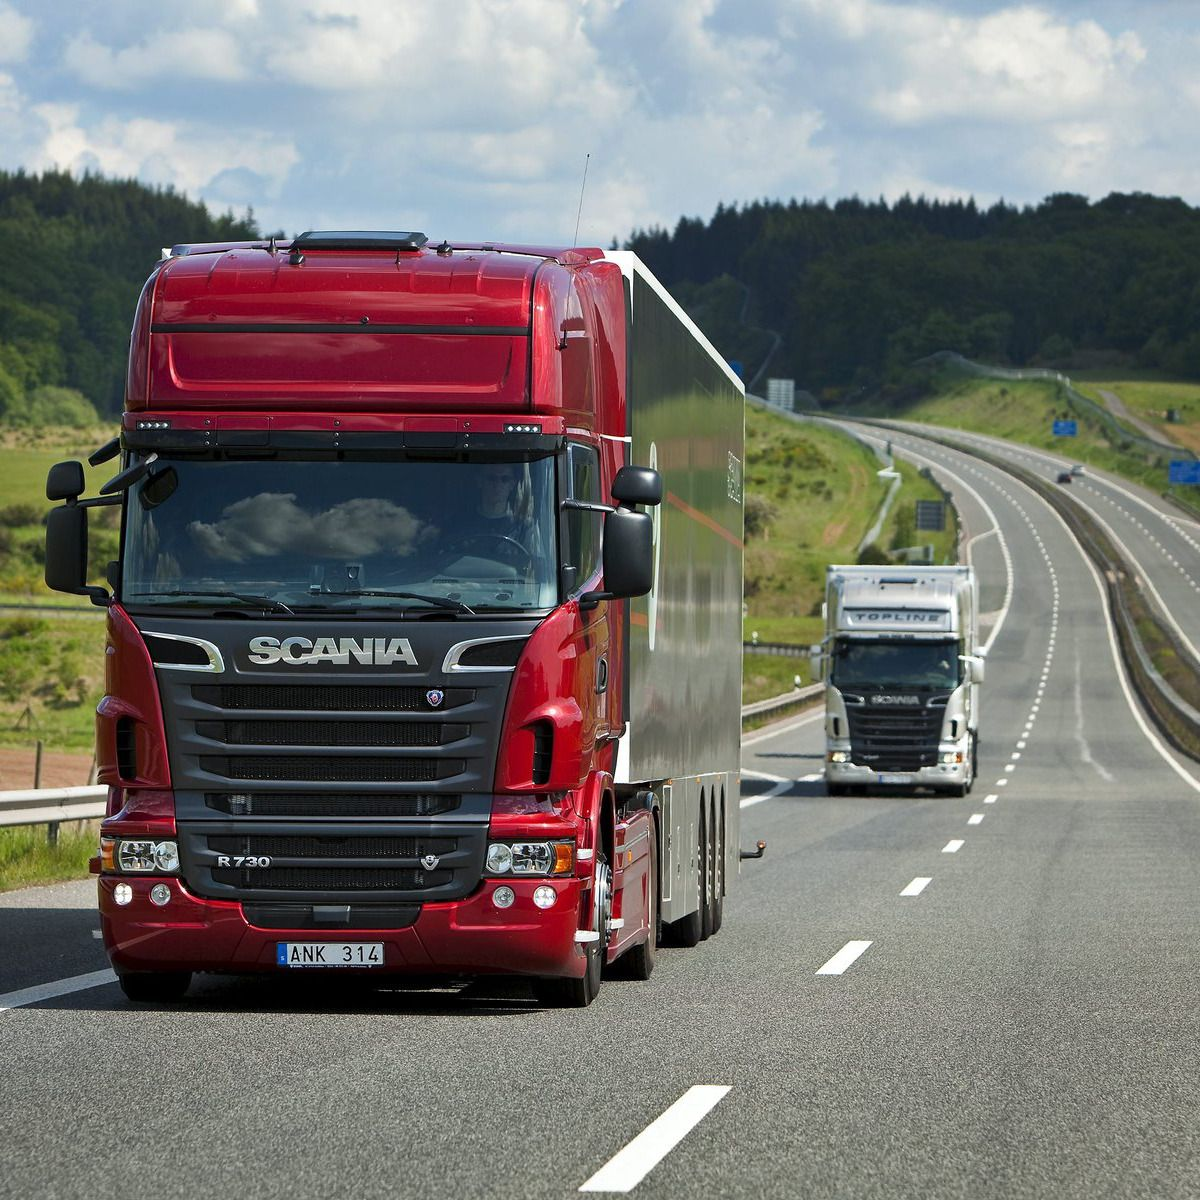 Red Trailer Scania Trucks 9358 Hd Wallpaper Pictures